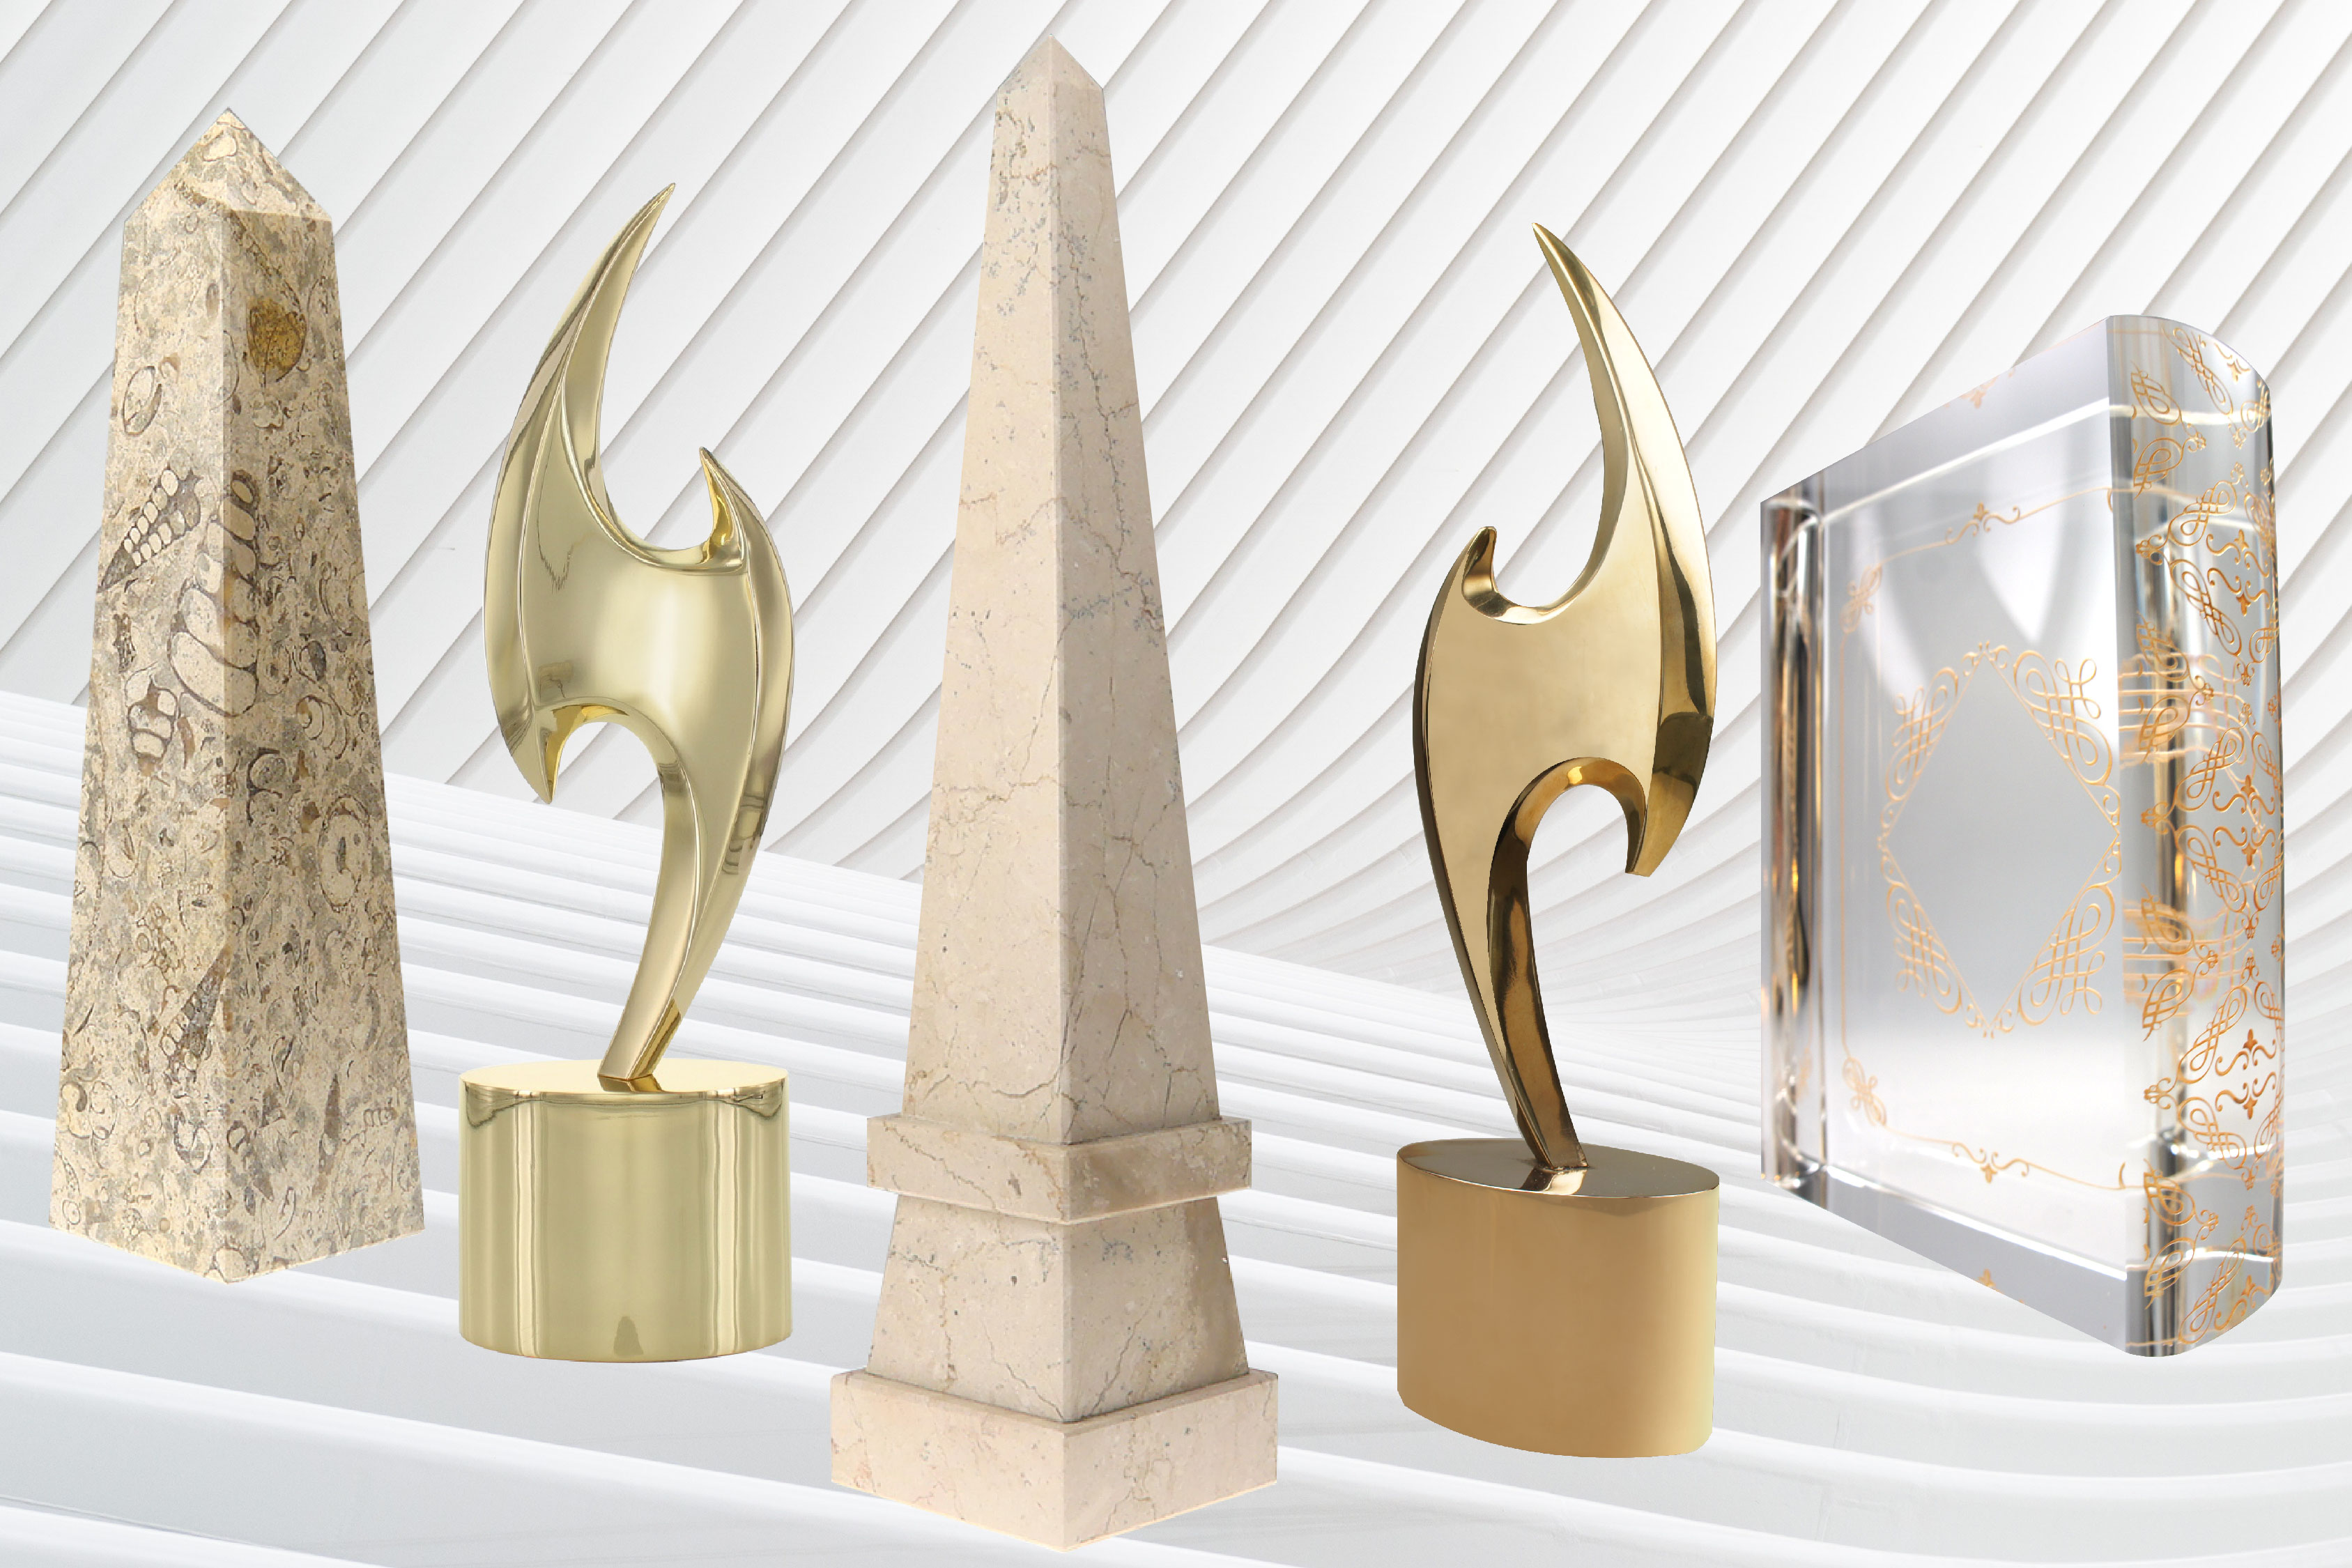 5 luxury objets d'art from the Society Awards Exclusives Collection. From left to right, Fossil Stone Obelisk, Society Star, Boticino Marble Stepped Obelisk, Polished Bronze Society Star, SA Crystal Book